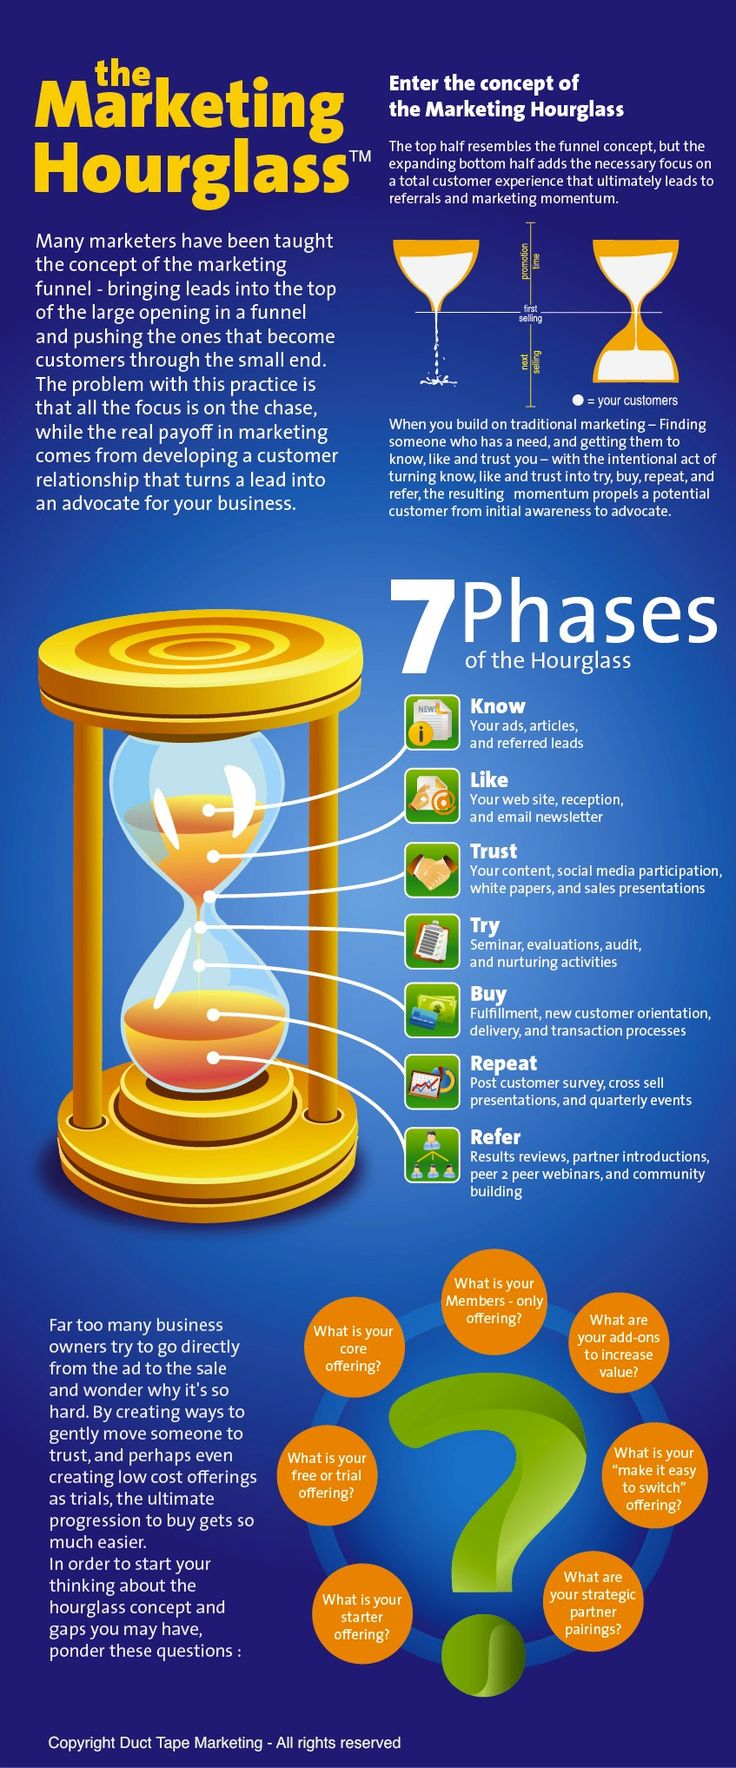 7 Phases - The Marketing Hourglass